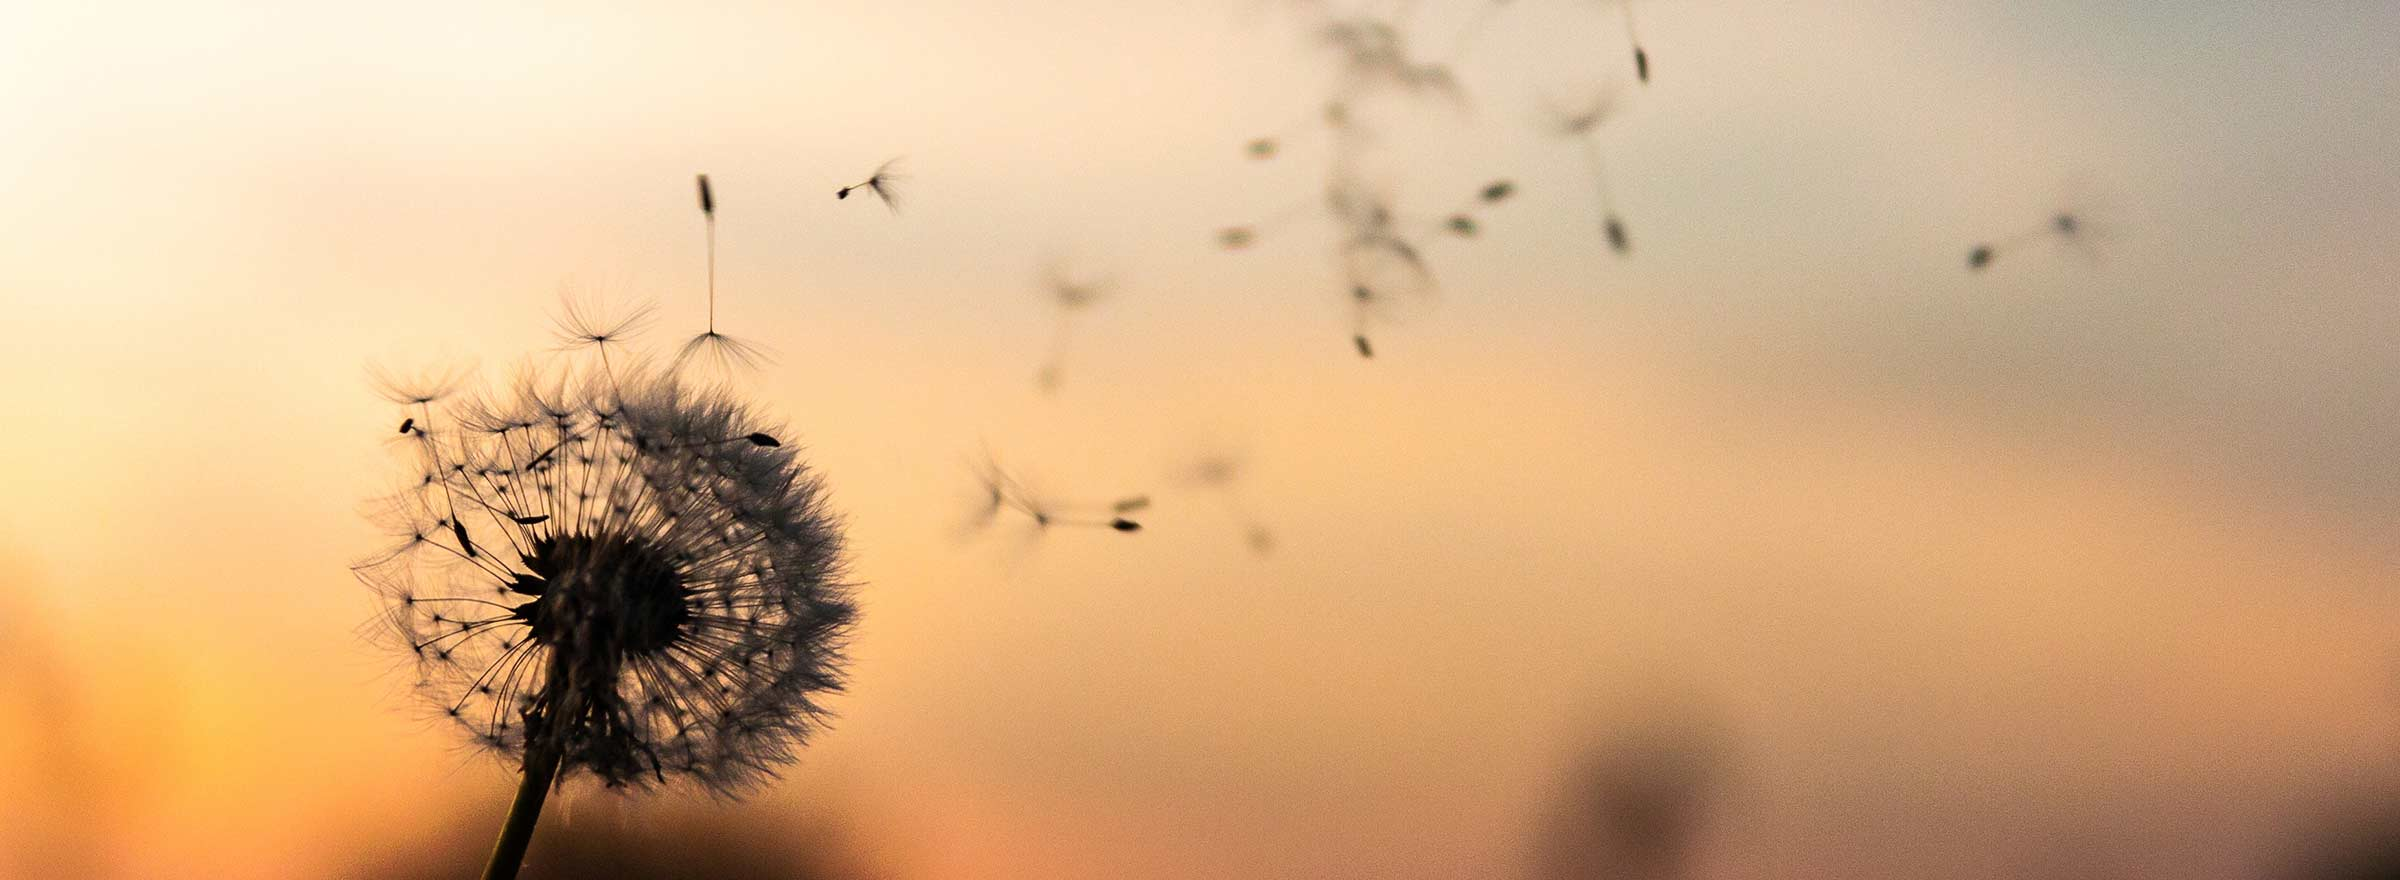 dandelion seed head with the seeds floating away